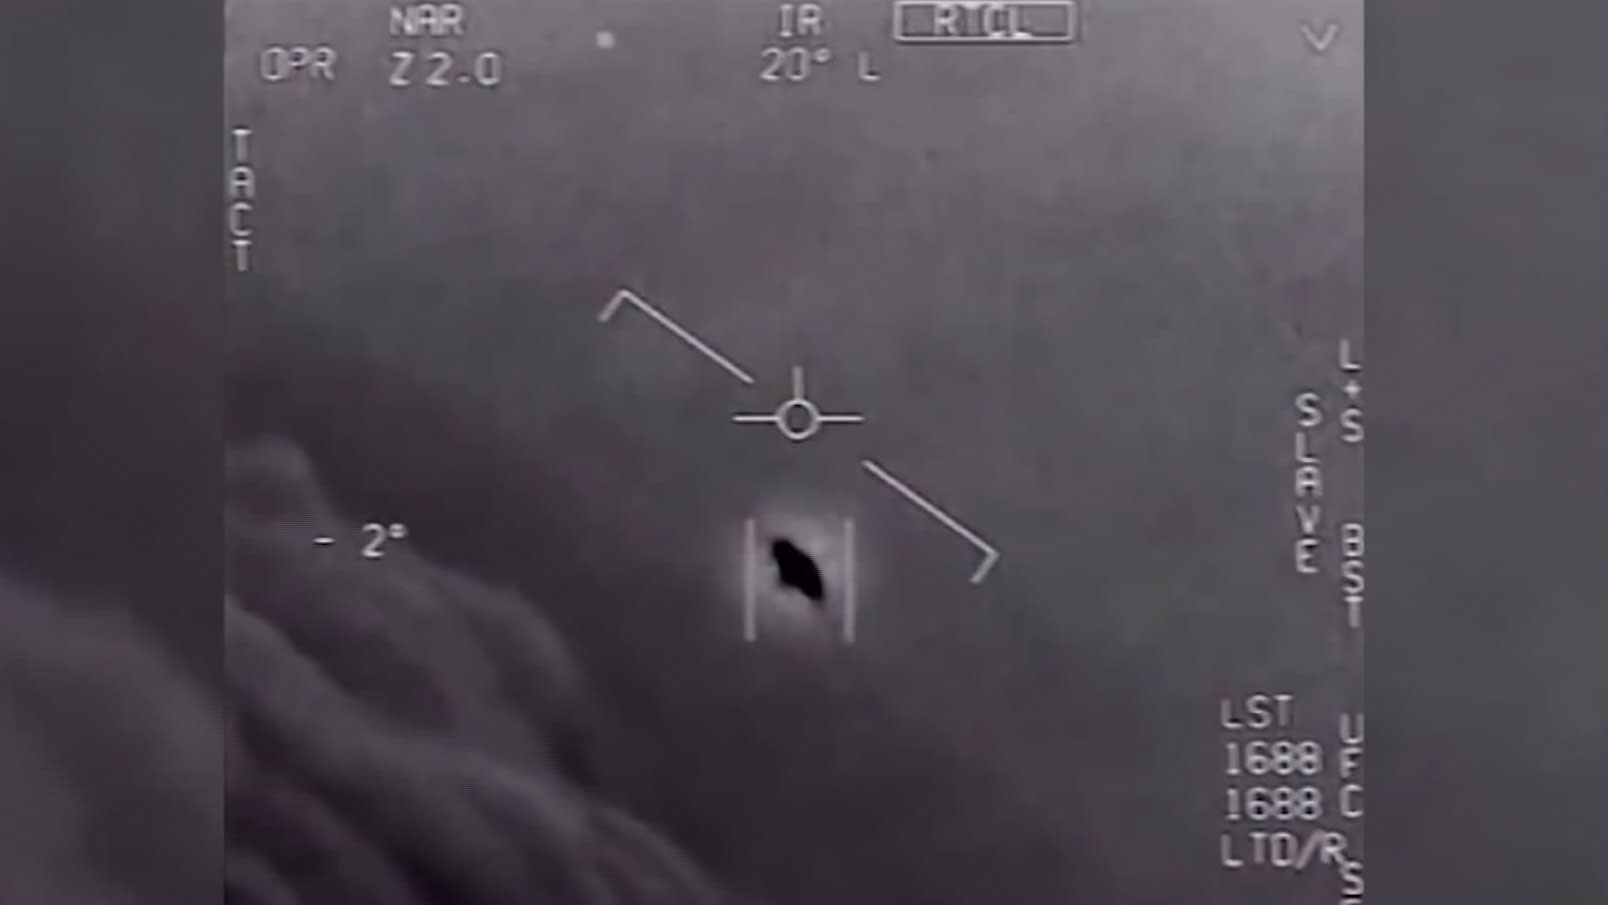 With a recently released UFO report, more people are asking about extraterrestrial life. Here's what that question could reveal